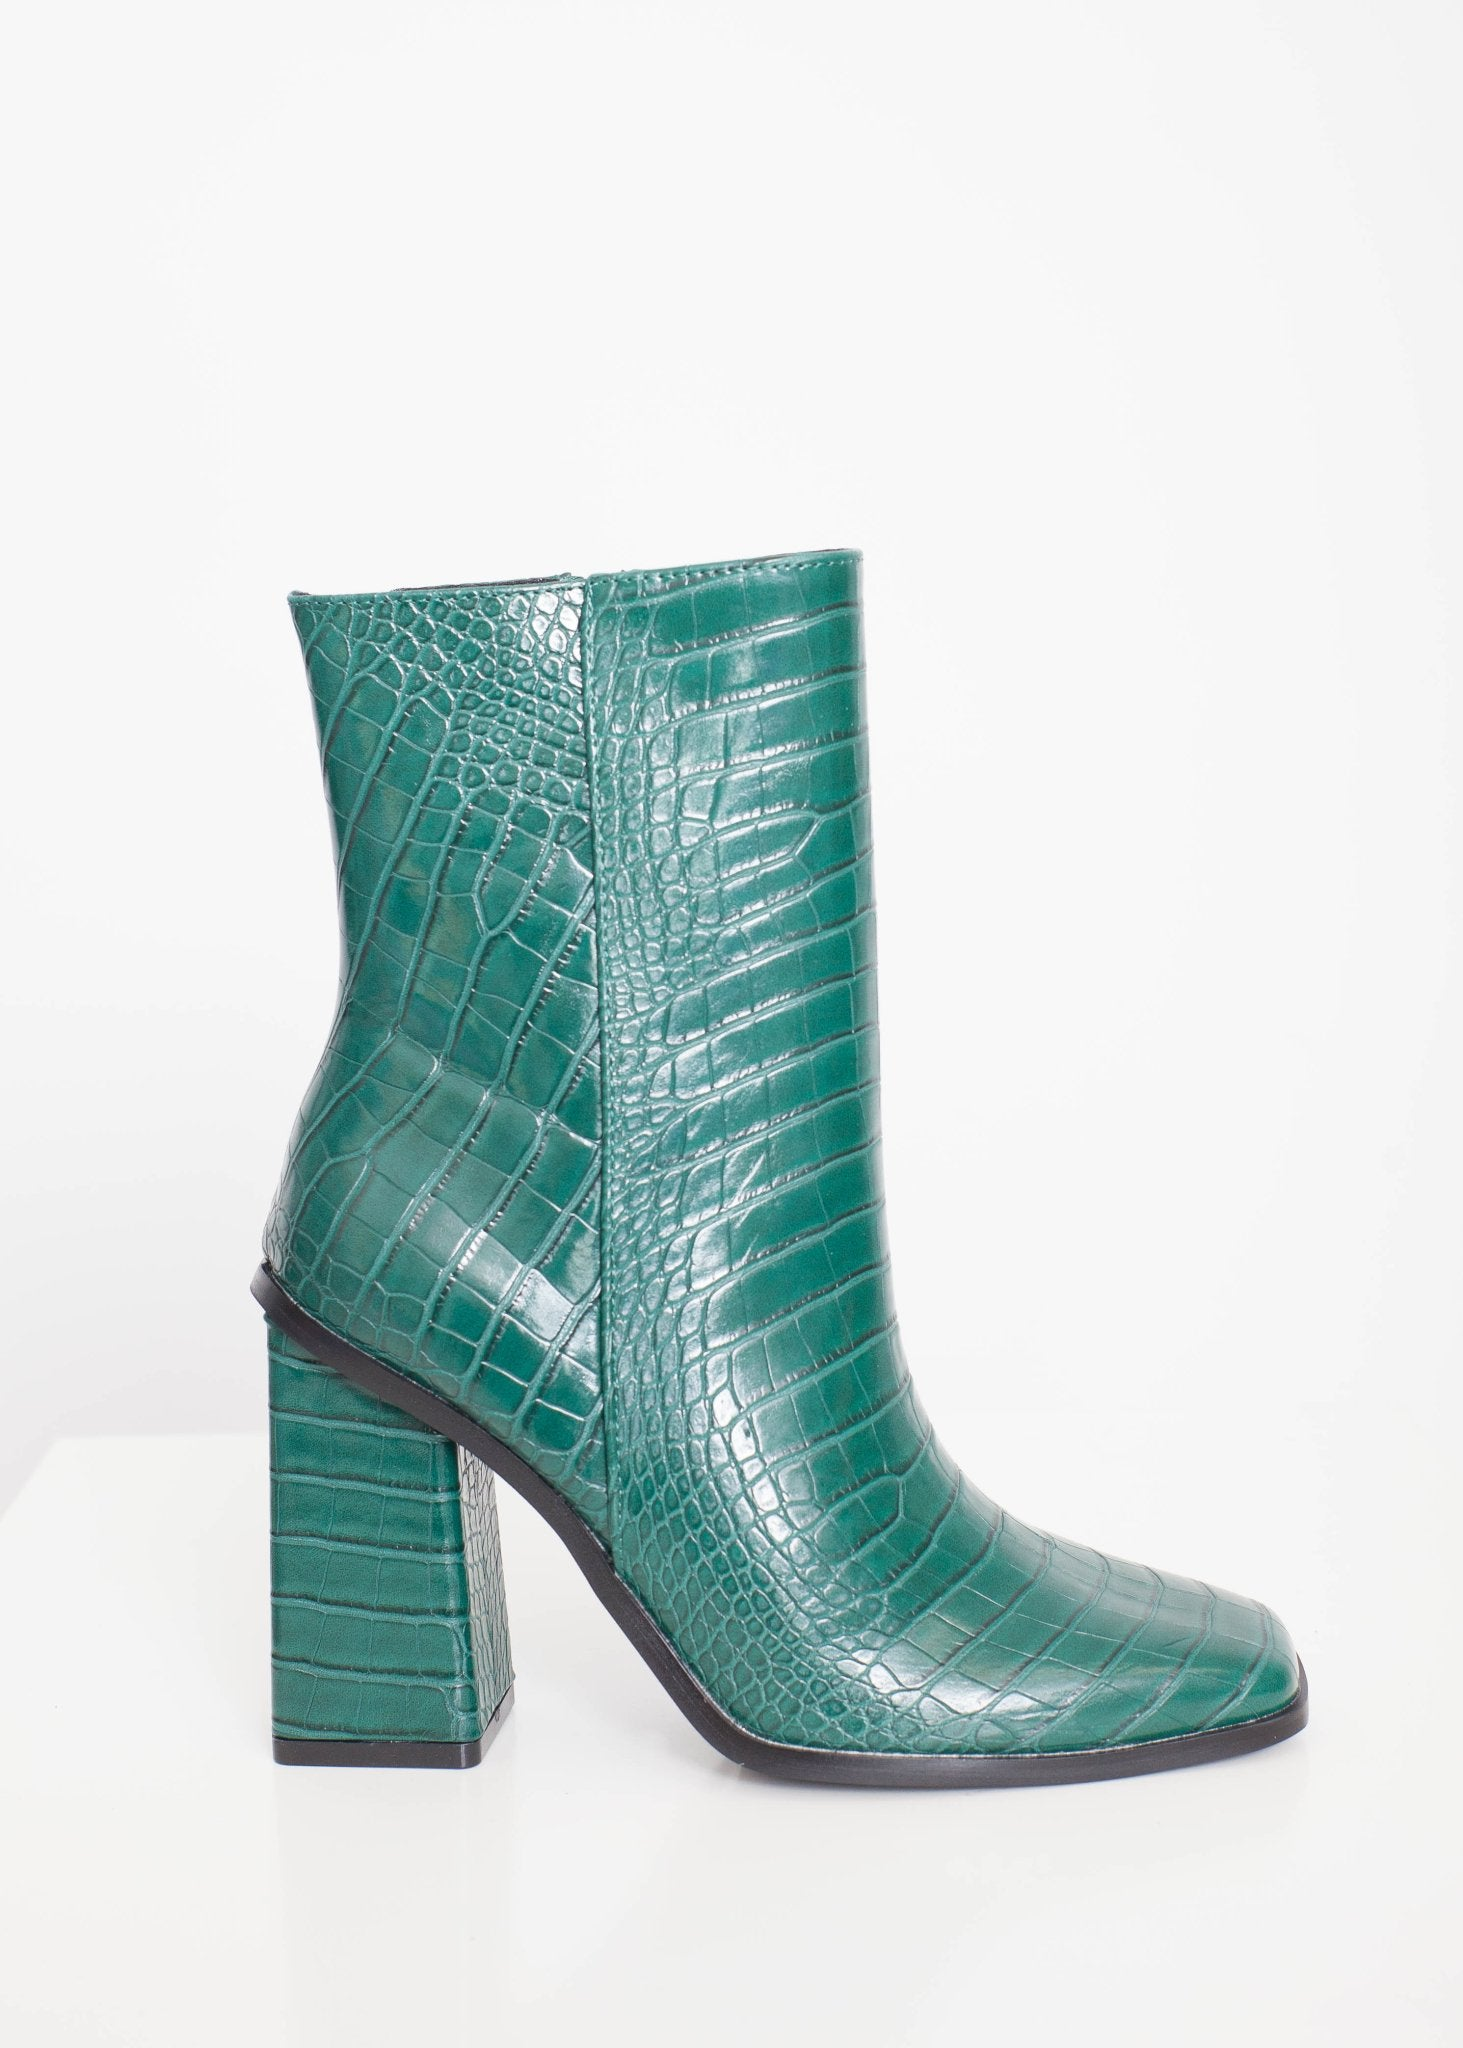 Priya Croc Boots in Green - The Walk in Wardrobe